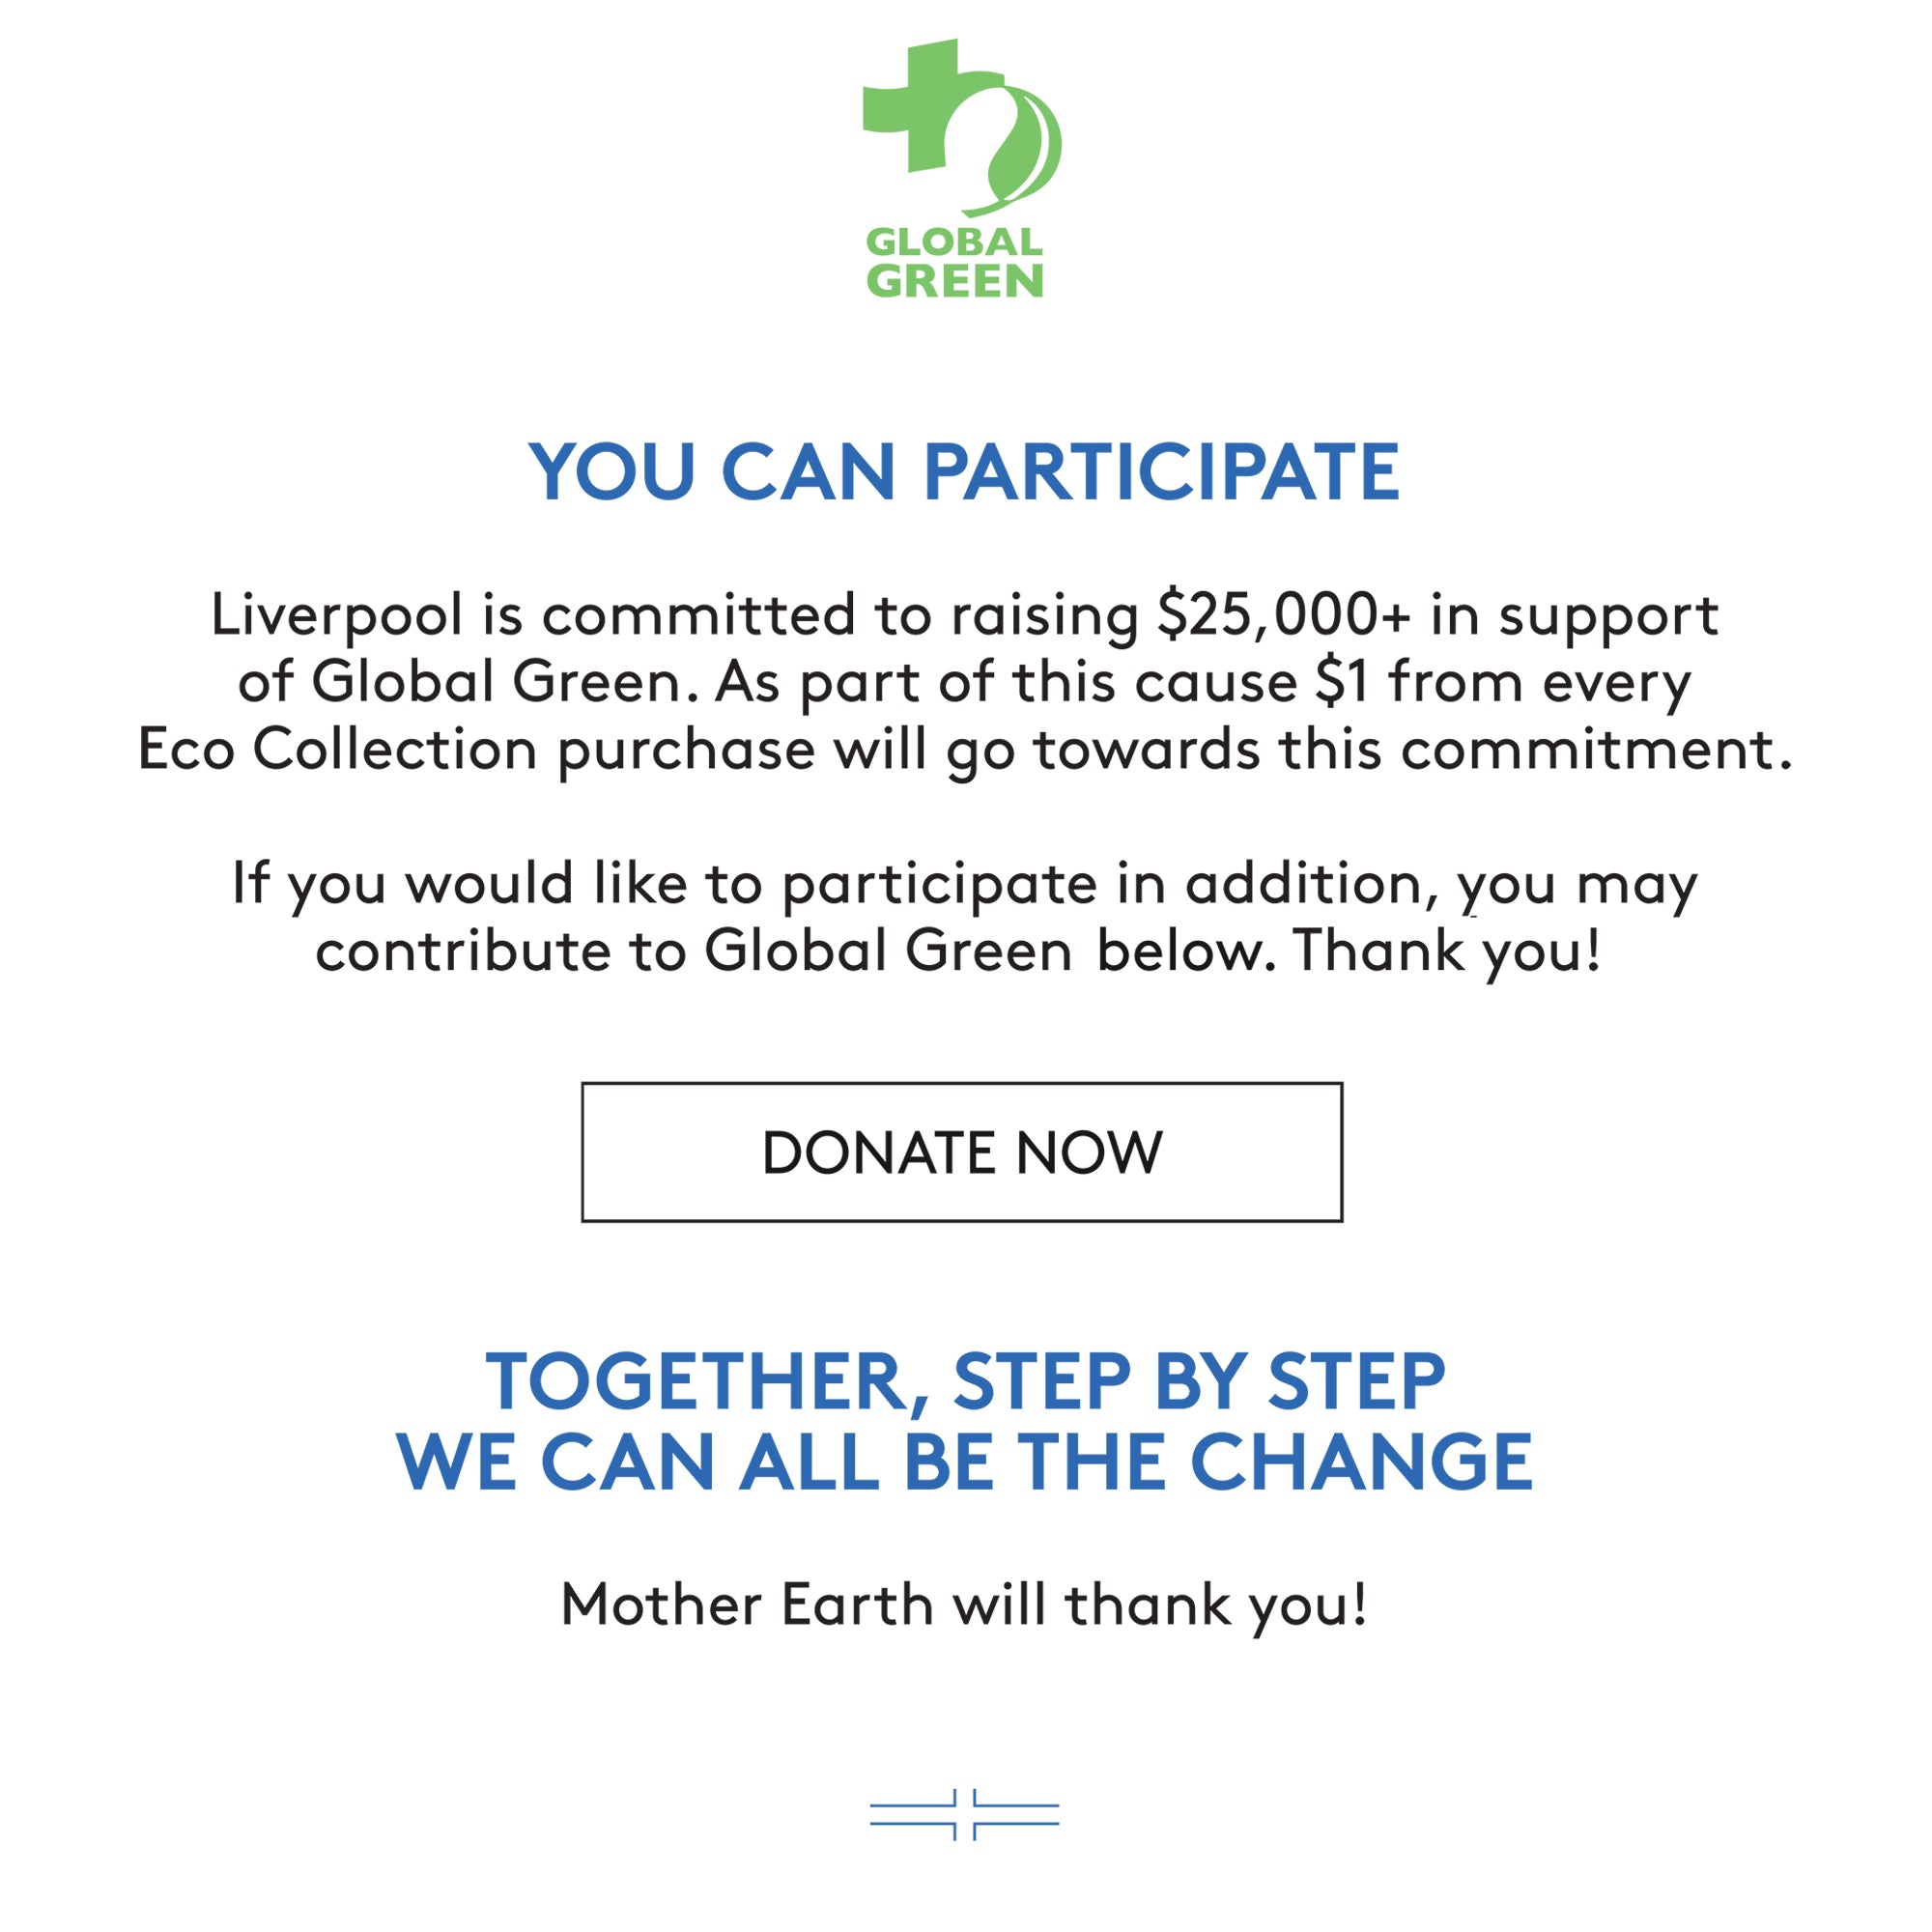 YOU CAN PARTICIPATE Liverpool is committed to raising $25,000+ in support of Global Green. As part of this cause $1 from every Eco Collection purchase will go towards this commitment. If you would like to participate in addition, you may contribute to Global Green below. Thank you! TOGETHER, STEP BY STEP WE CAN ALL BE THE CHANGE Mother Earth will thank you!